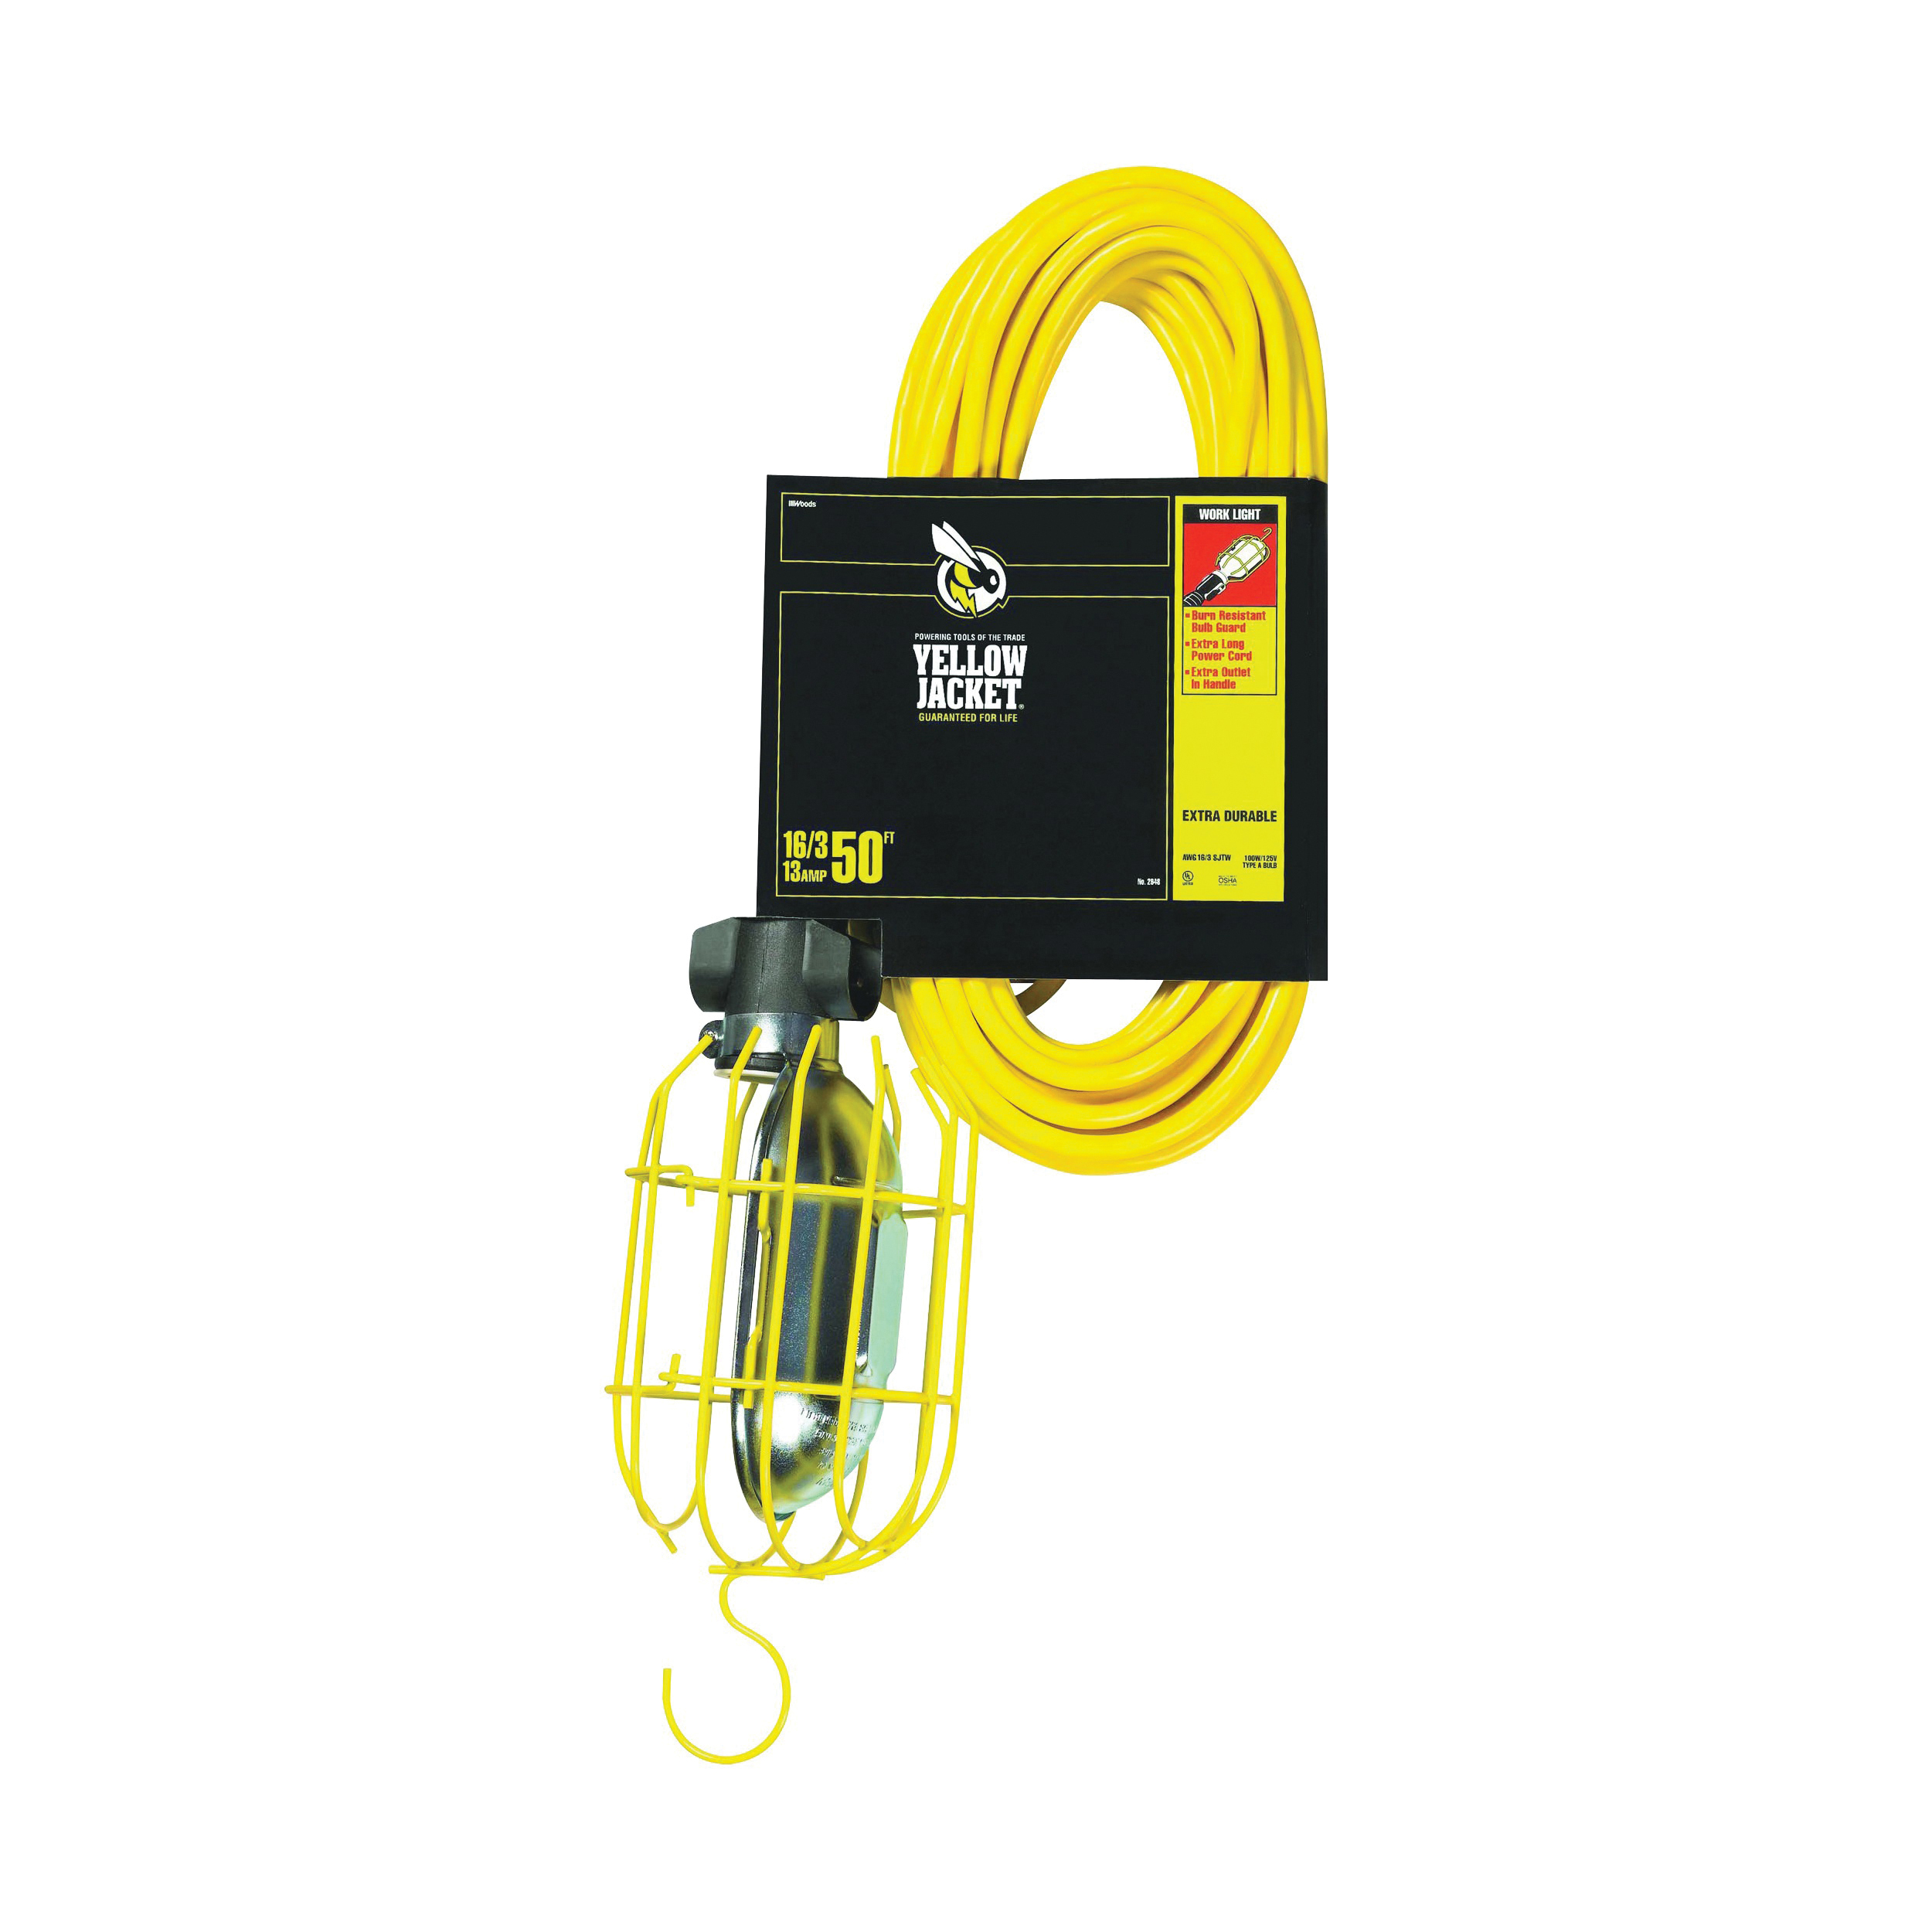 Picture of CCI 2948 Work Light with Outlet and Metal Guard, 13 A, 120 V, Yellow